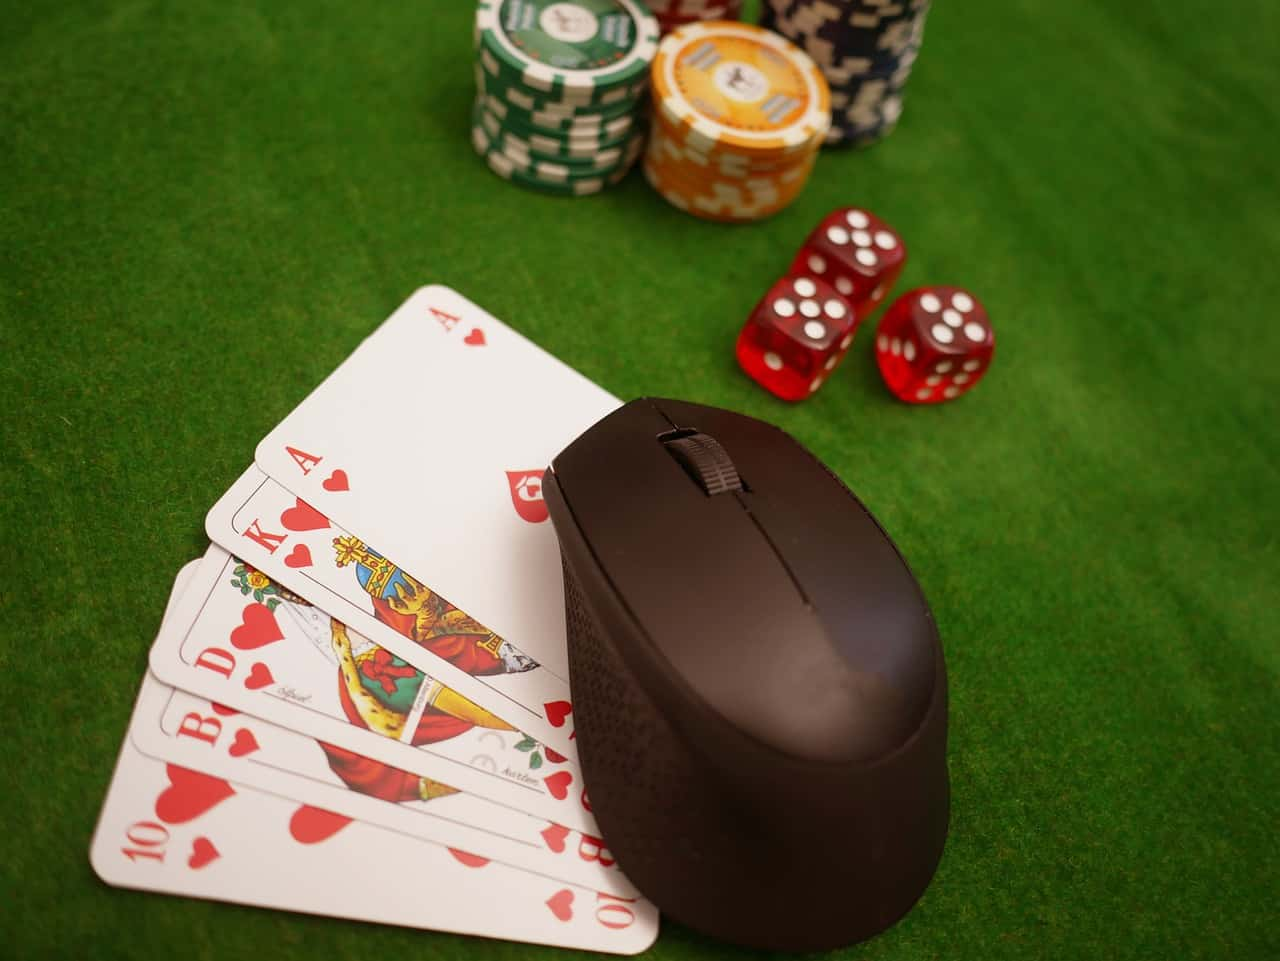 Most Popular Casino Games after Pokies